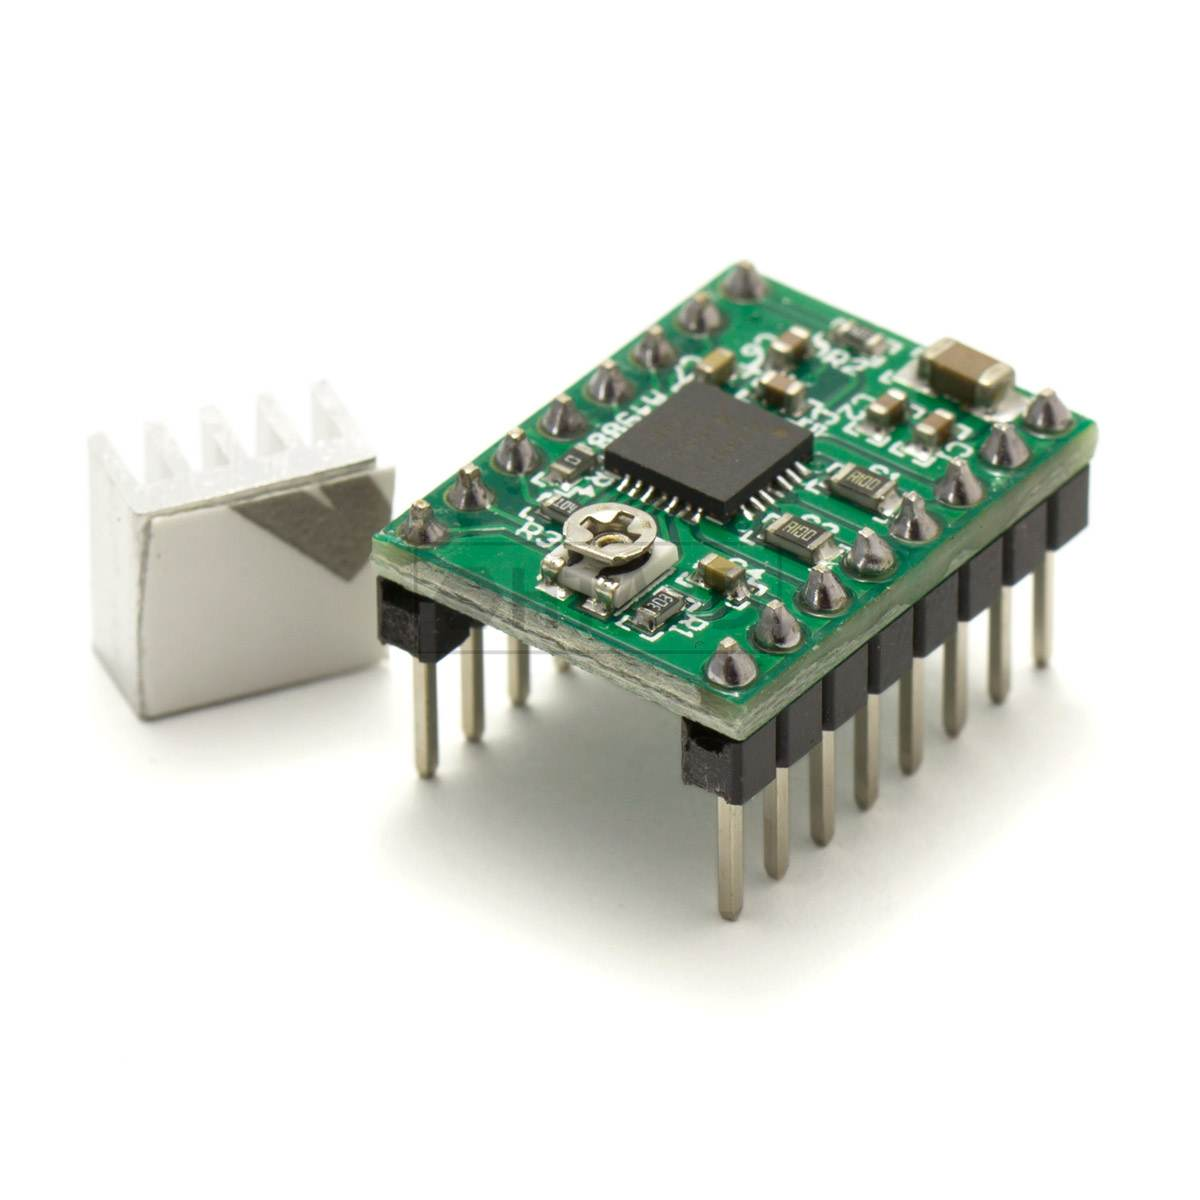 A4988 stepper motor controller pololu driver hta3d for Low cost stepper motor